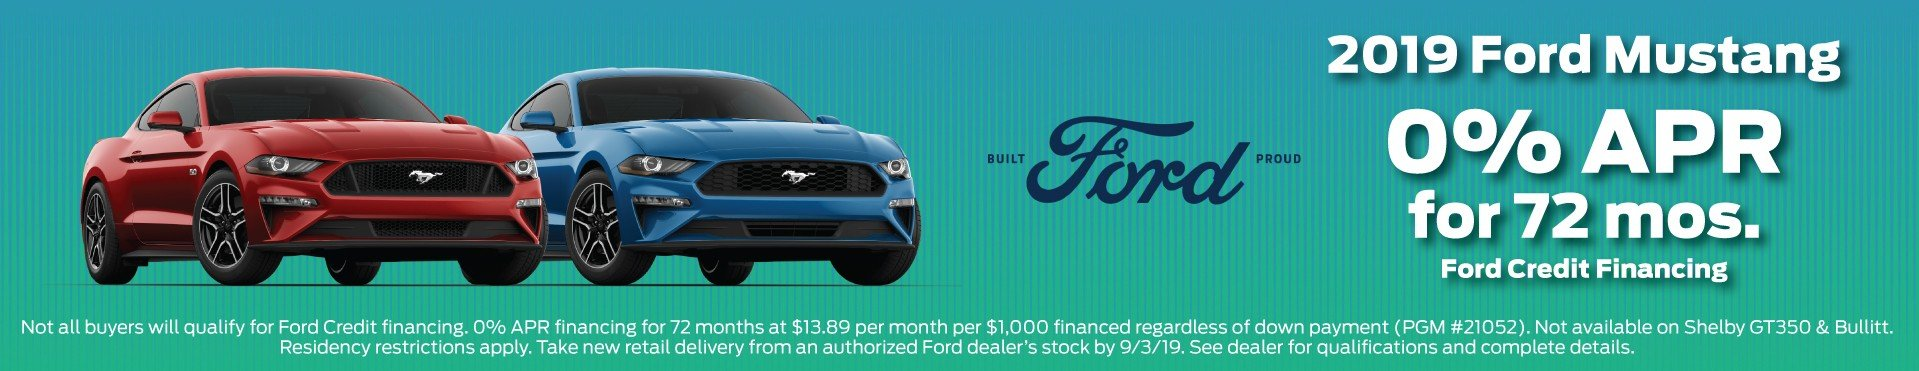 2019 Ford Mustang Offer 7-2019